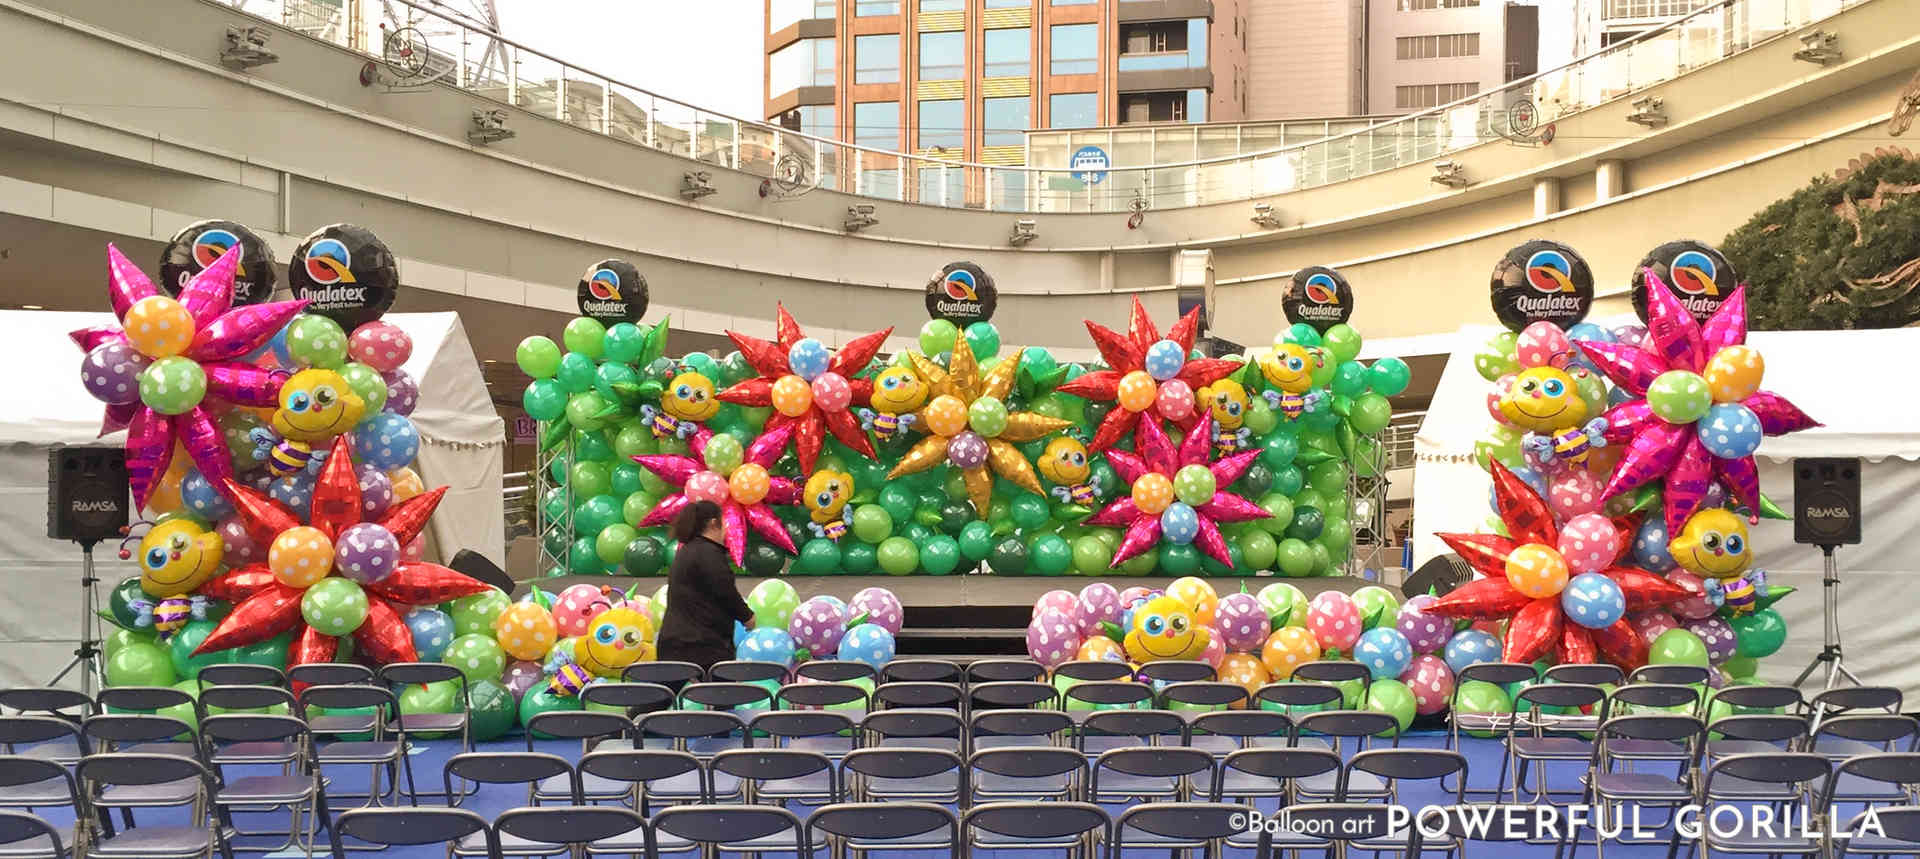 Balloon Art Display